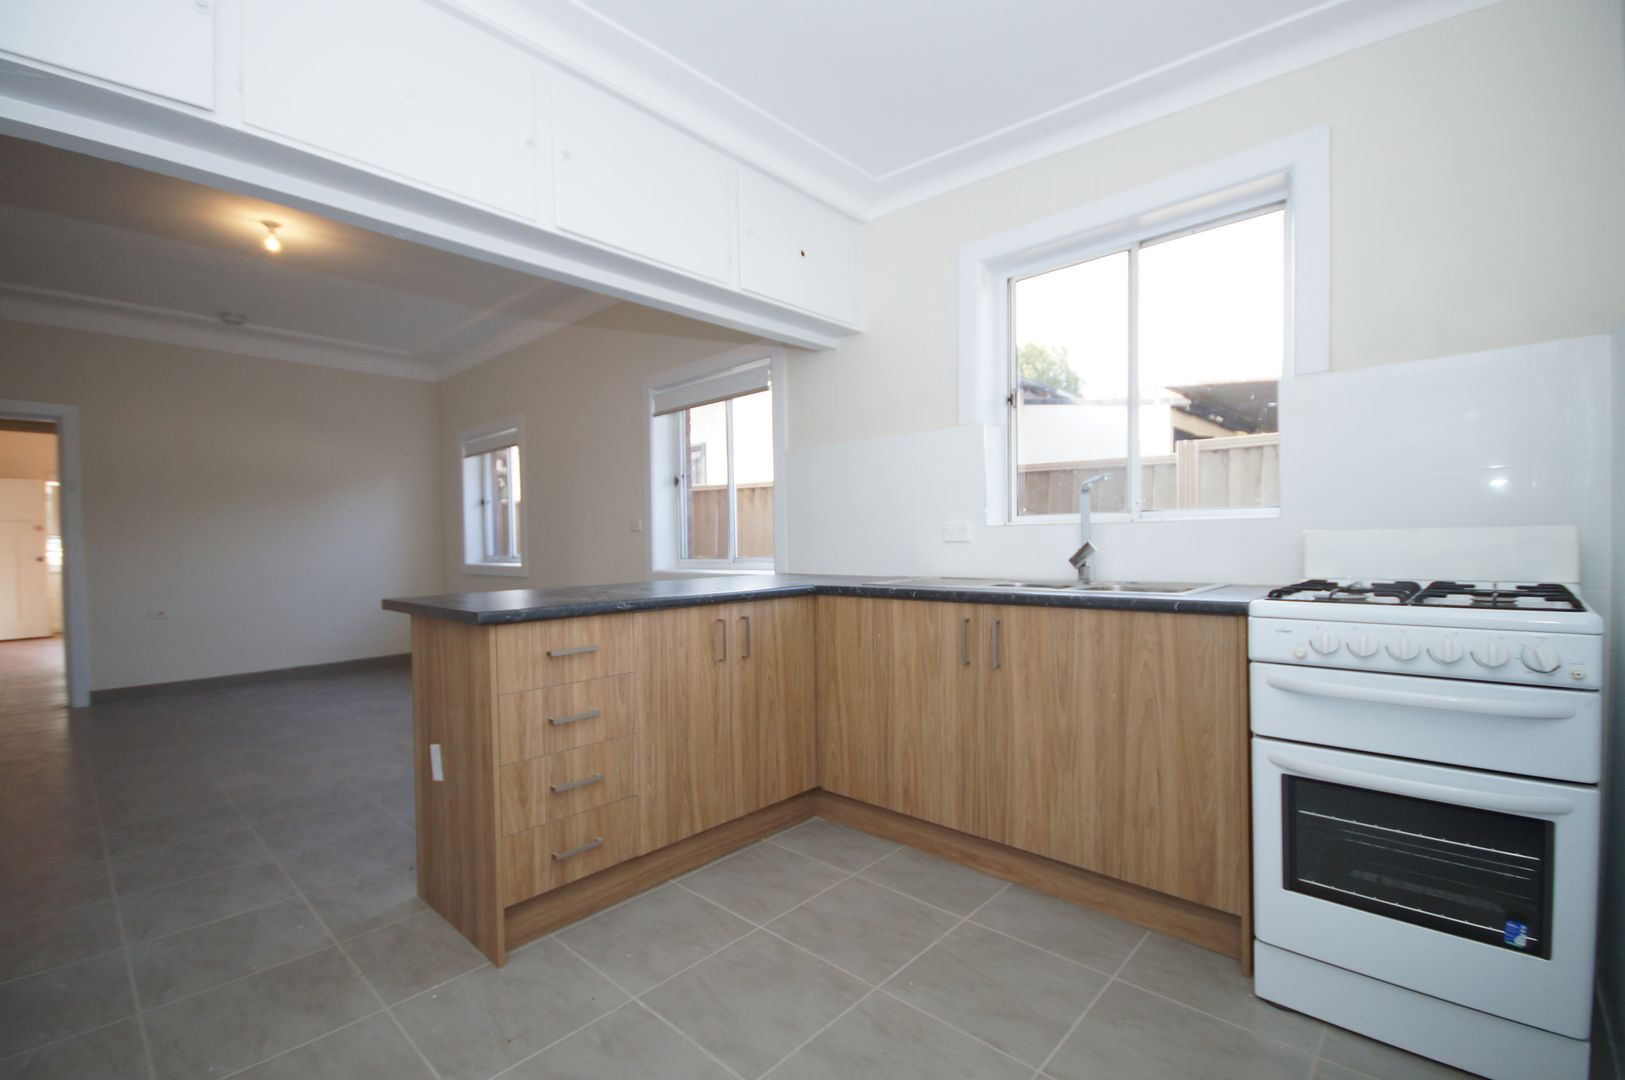 405 Stacey St, Bankstown NSW 2200, Image 2